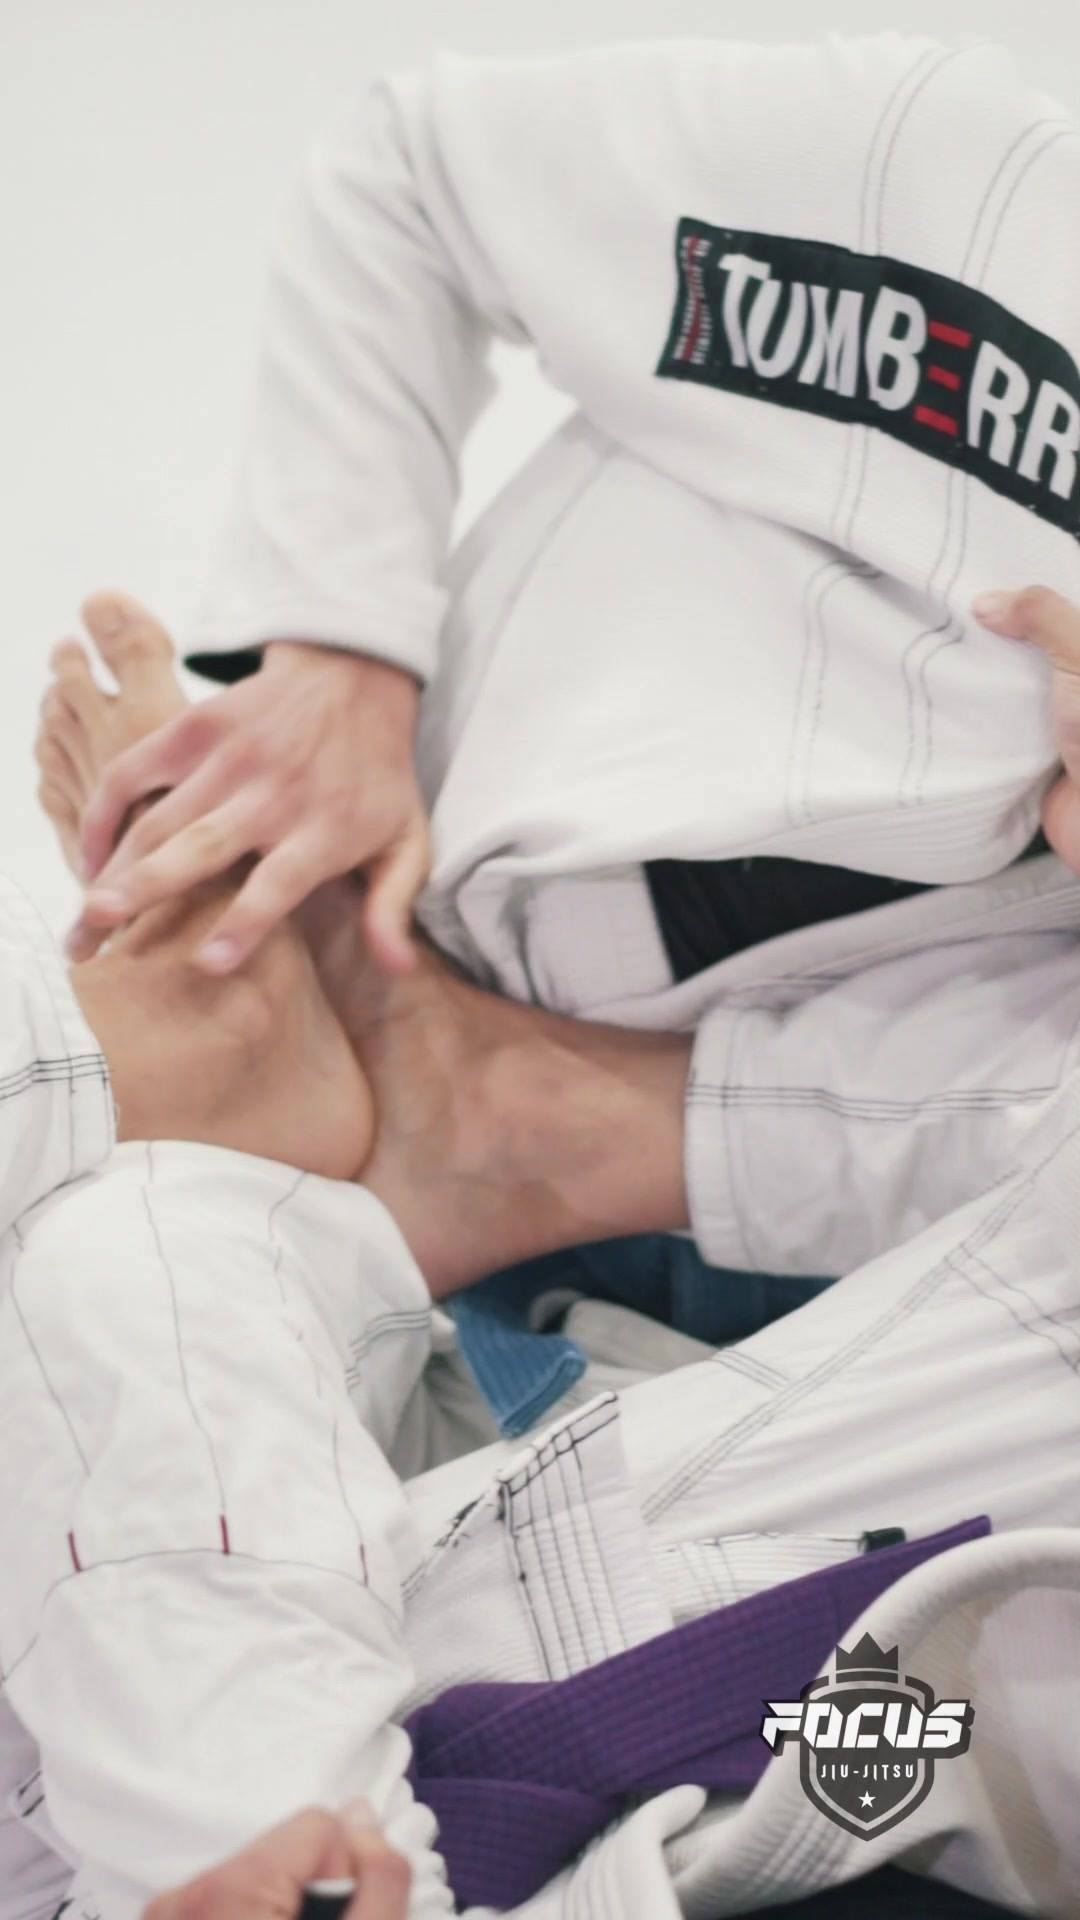 Videos of Focus Jiu-Jitsu